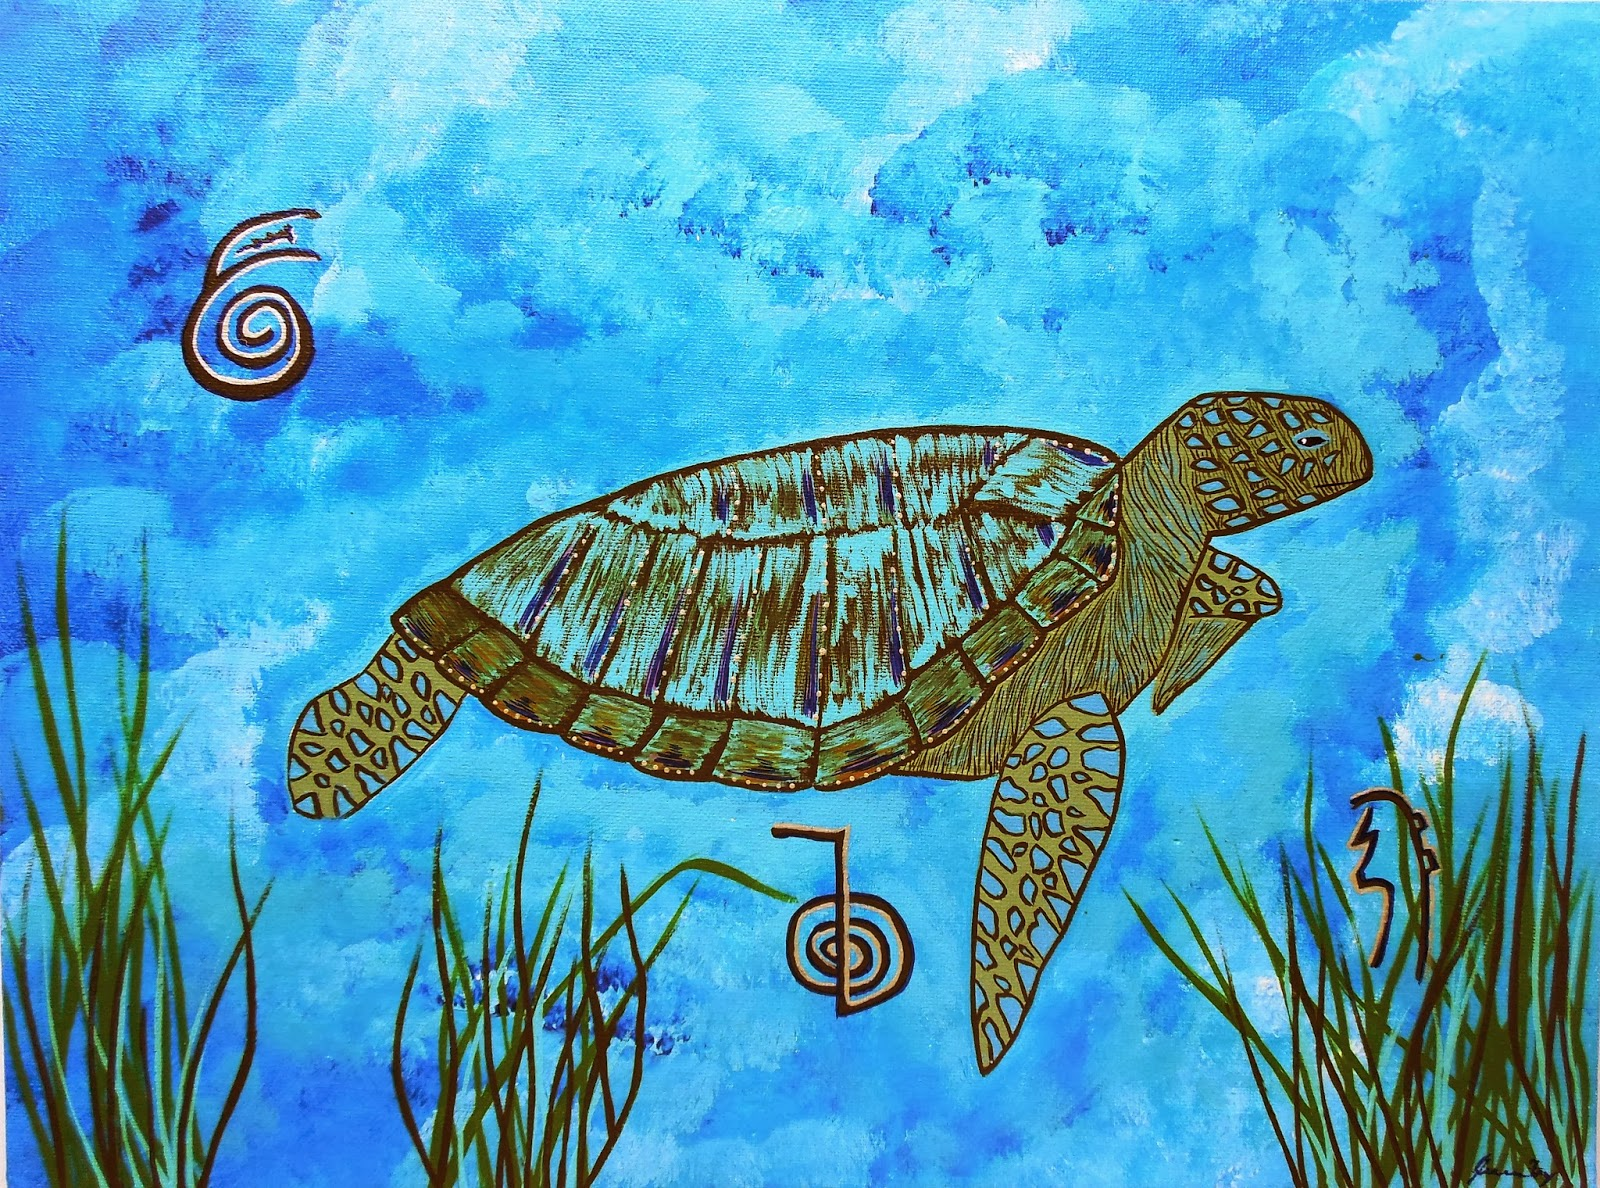 Conscious art studios emotional healing with the sea turtle totem emotional healing with the sea turtle totem and reiki symbols by jeanne fry buycottarizona Choice Image